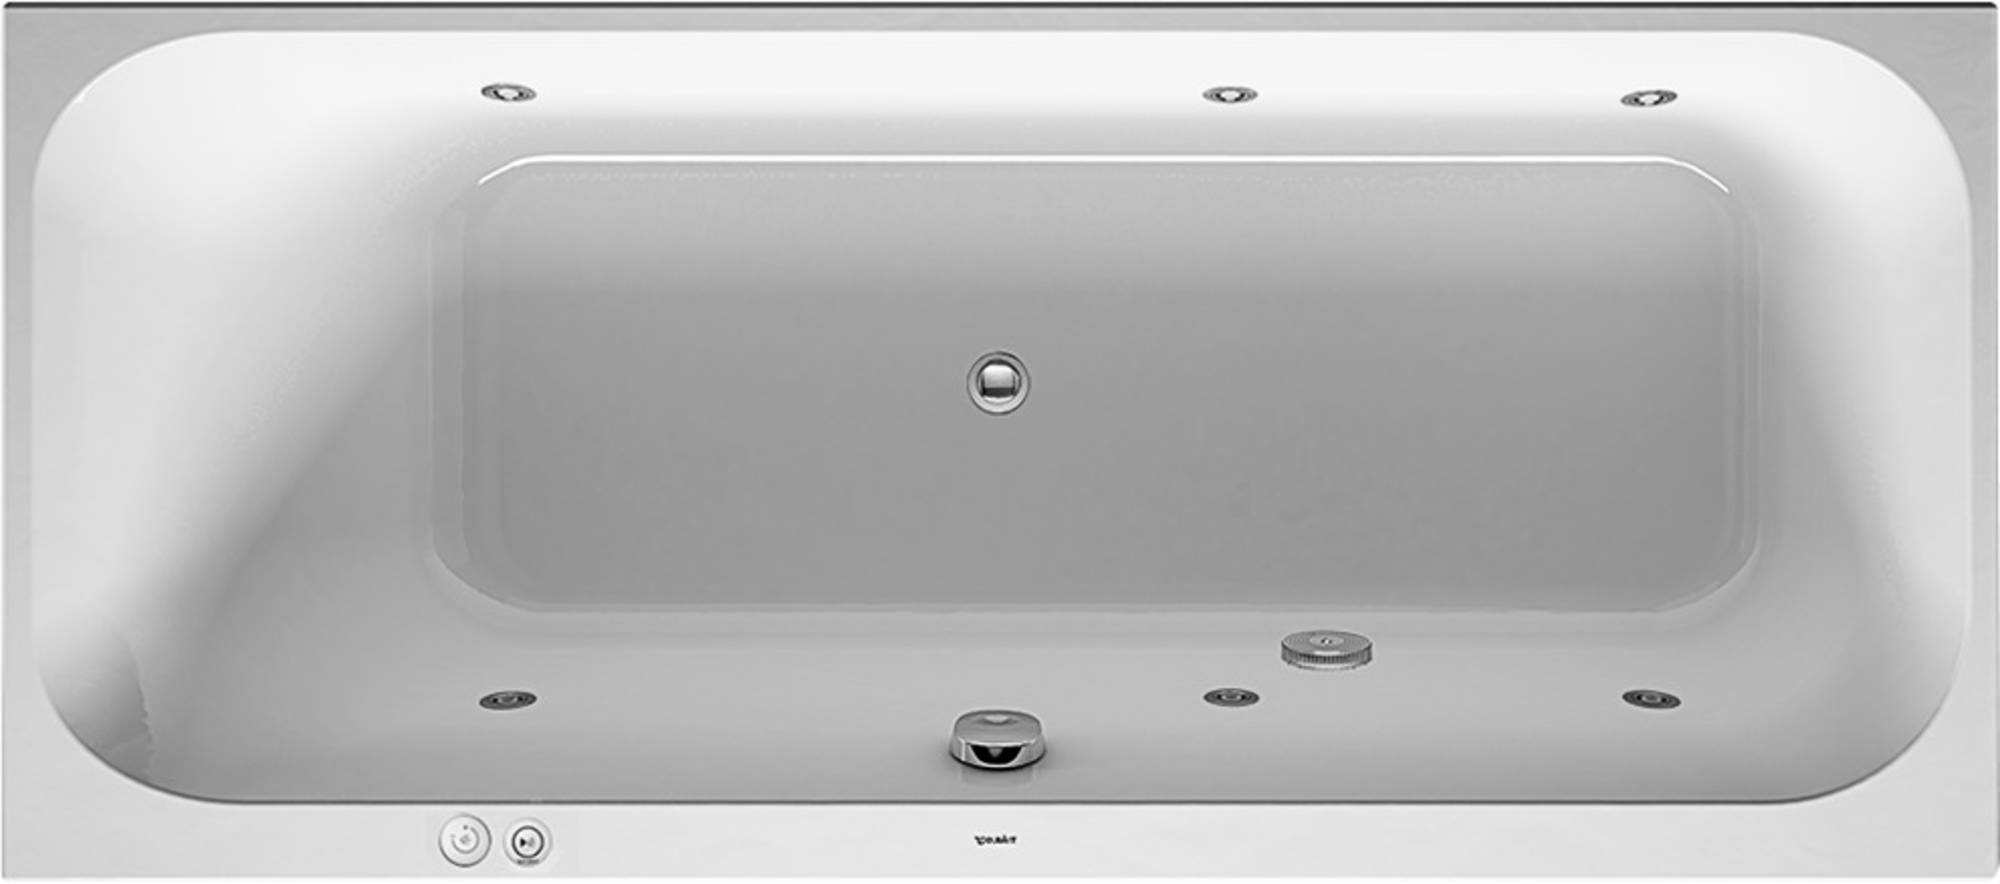 Duravit Happy D2 Systeembad 145 liter Acryl 160x70 cm Wit